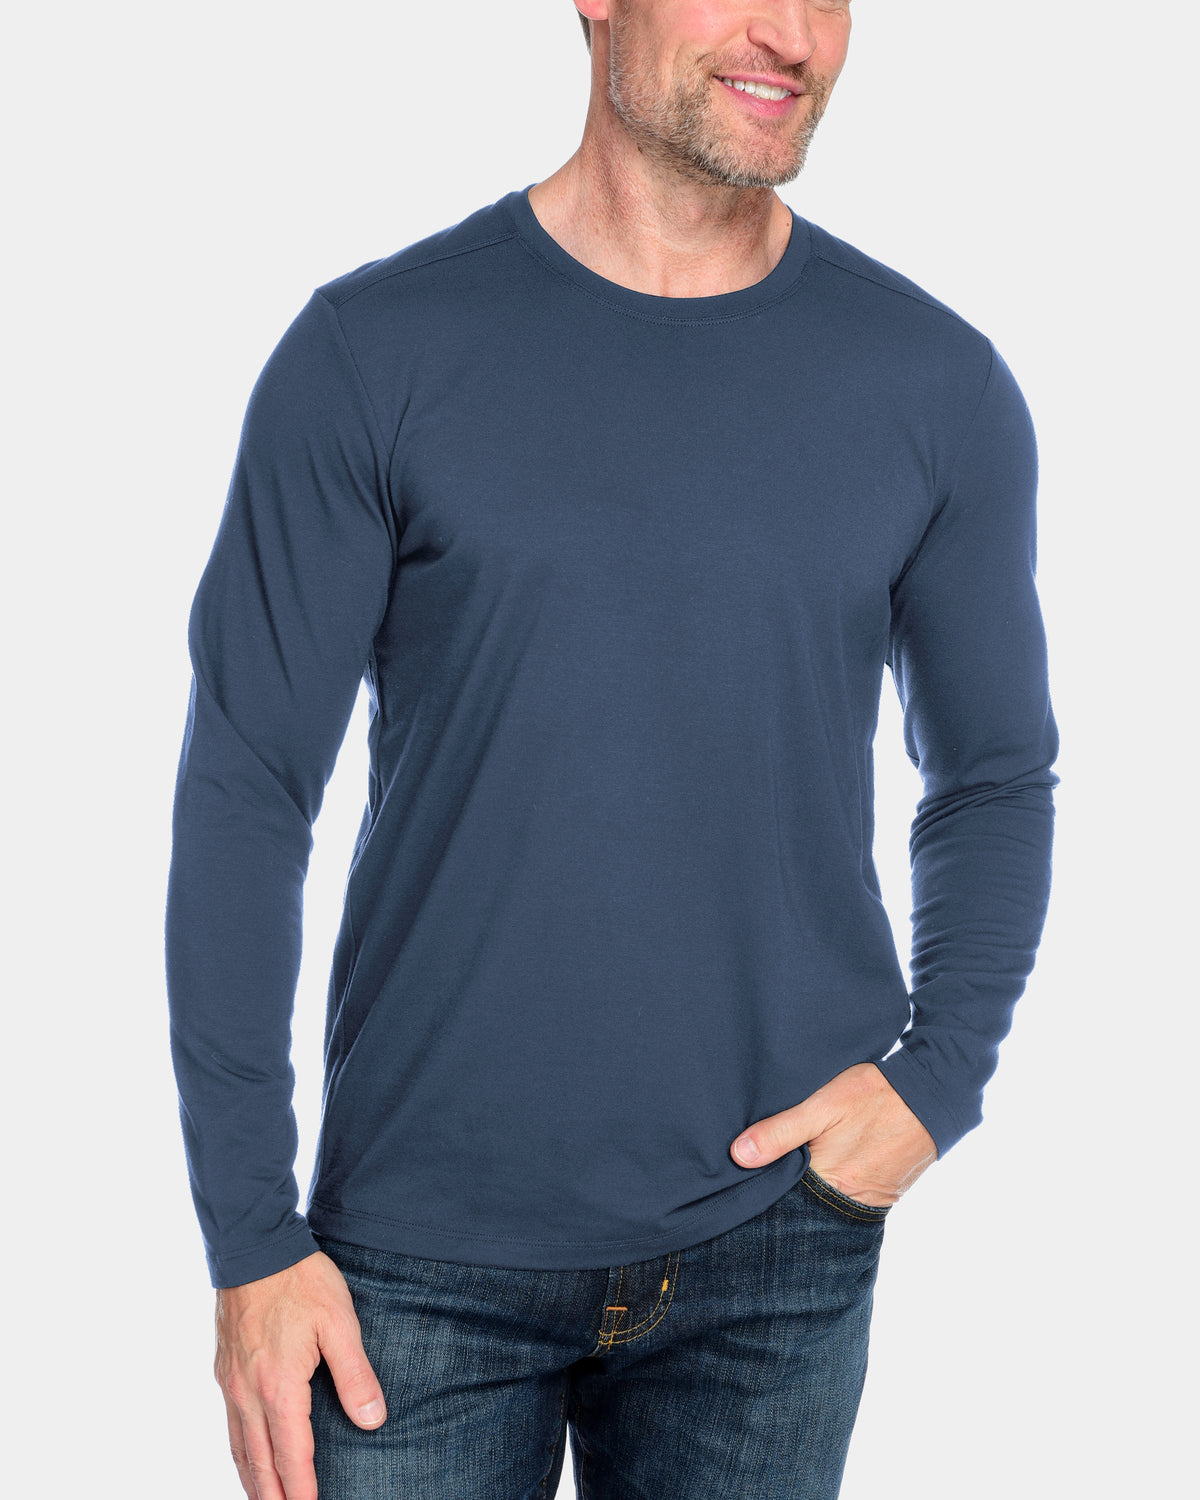 Men's Everyday Cashmere Long Sleeve Crew